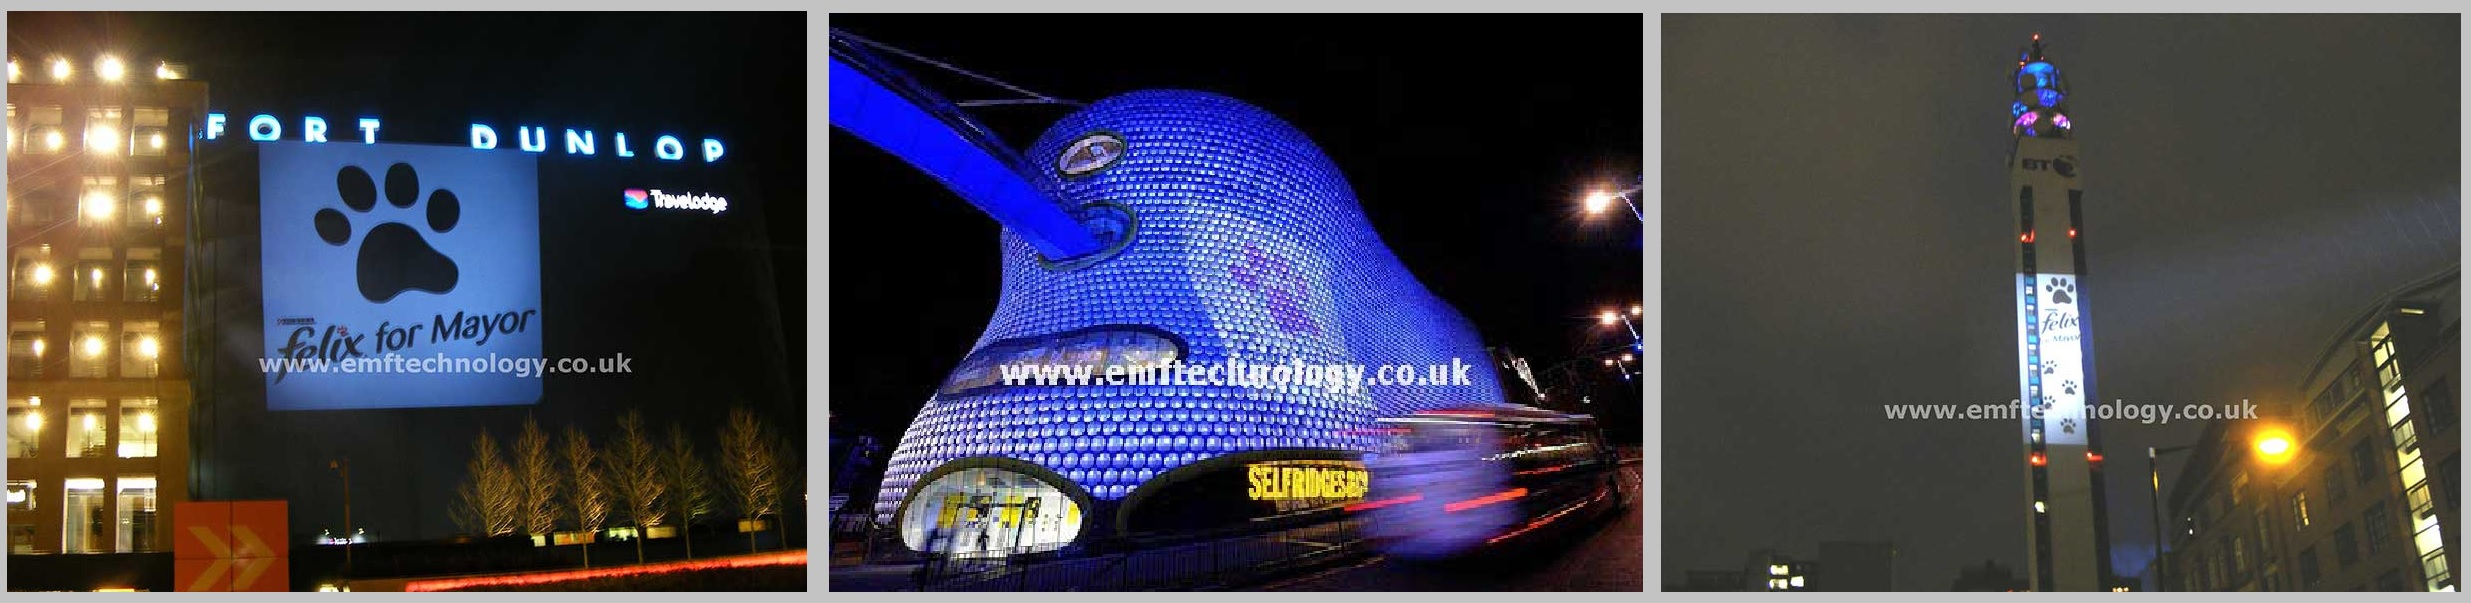 Outdoor Building Projection Advertising Campaign Birmingham